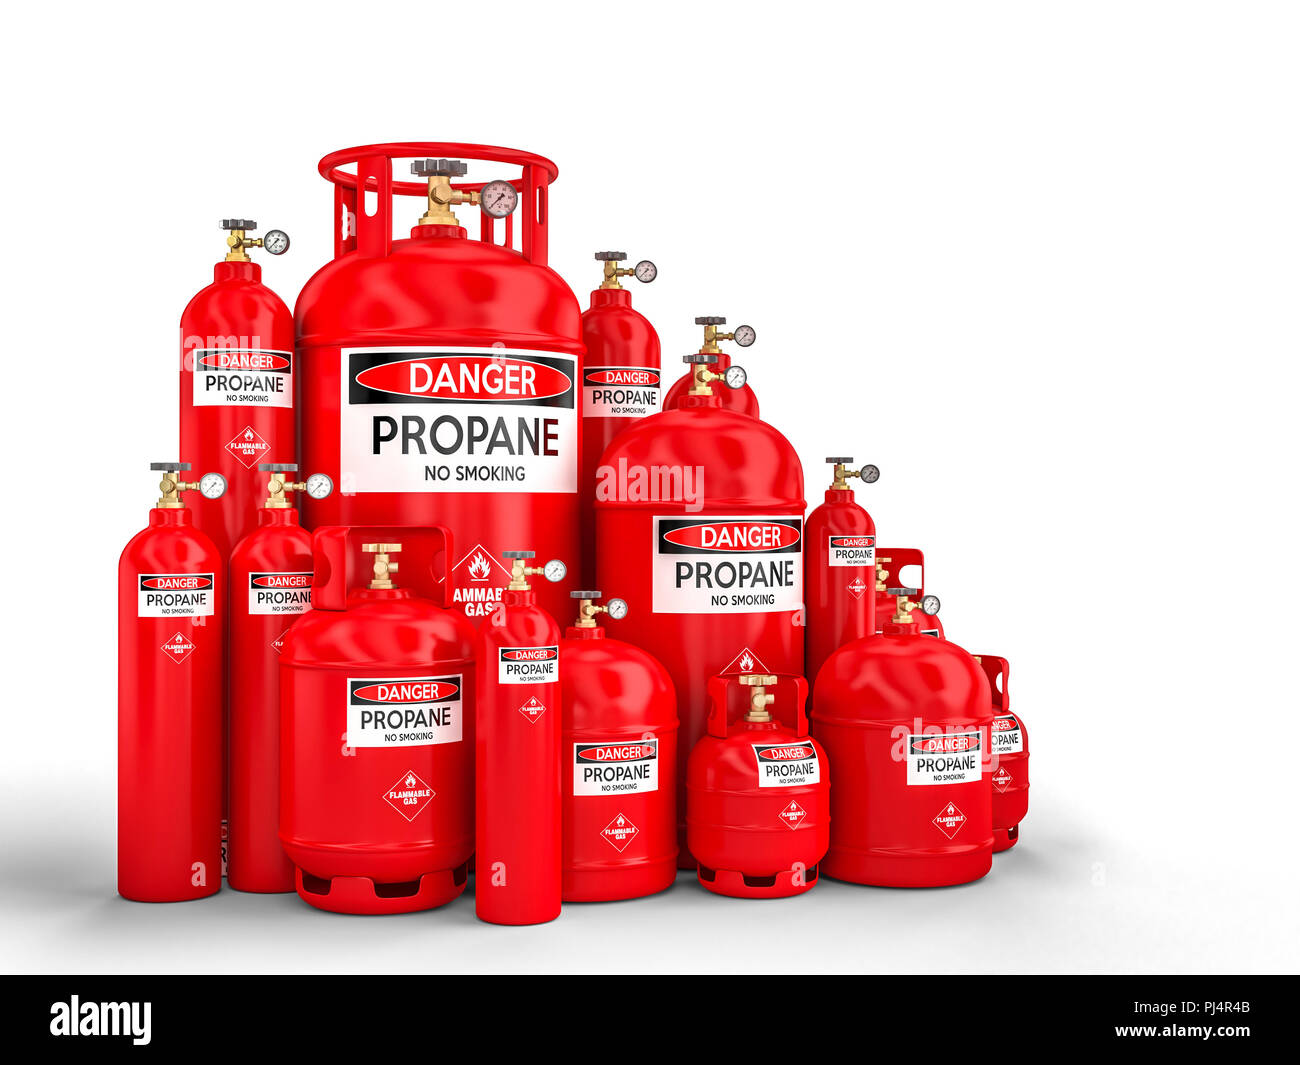 different propane cylinder container 3d rendering image - Stock Image